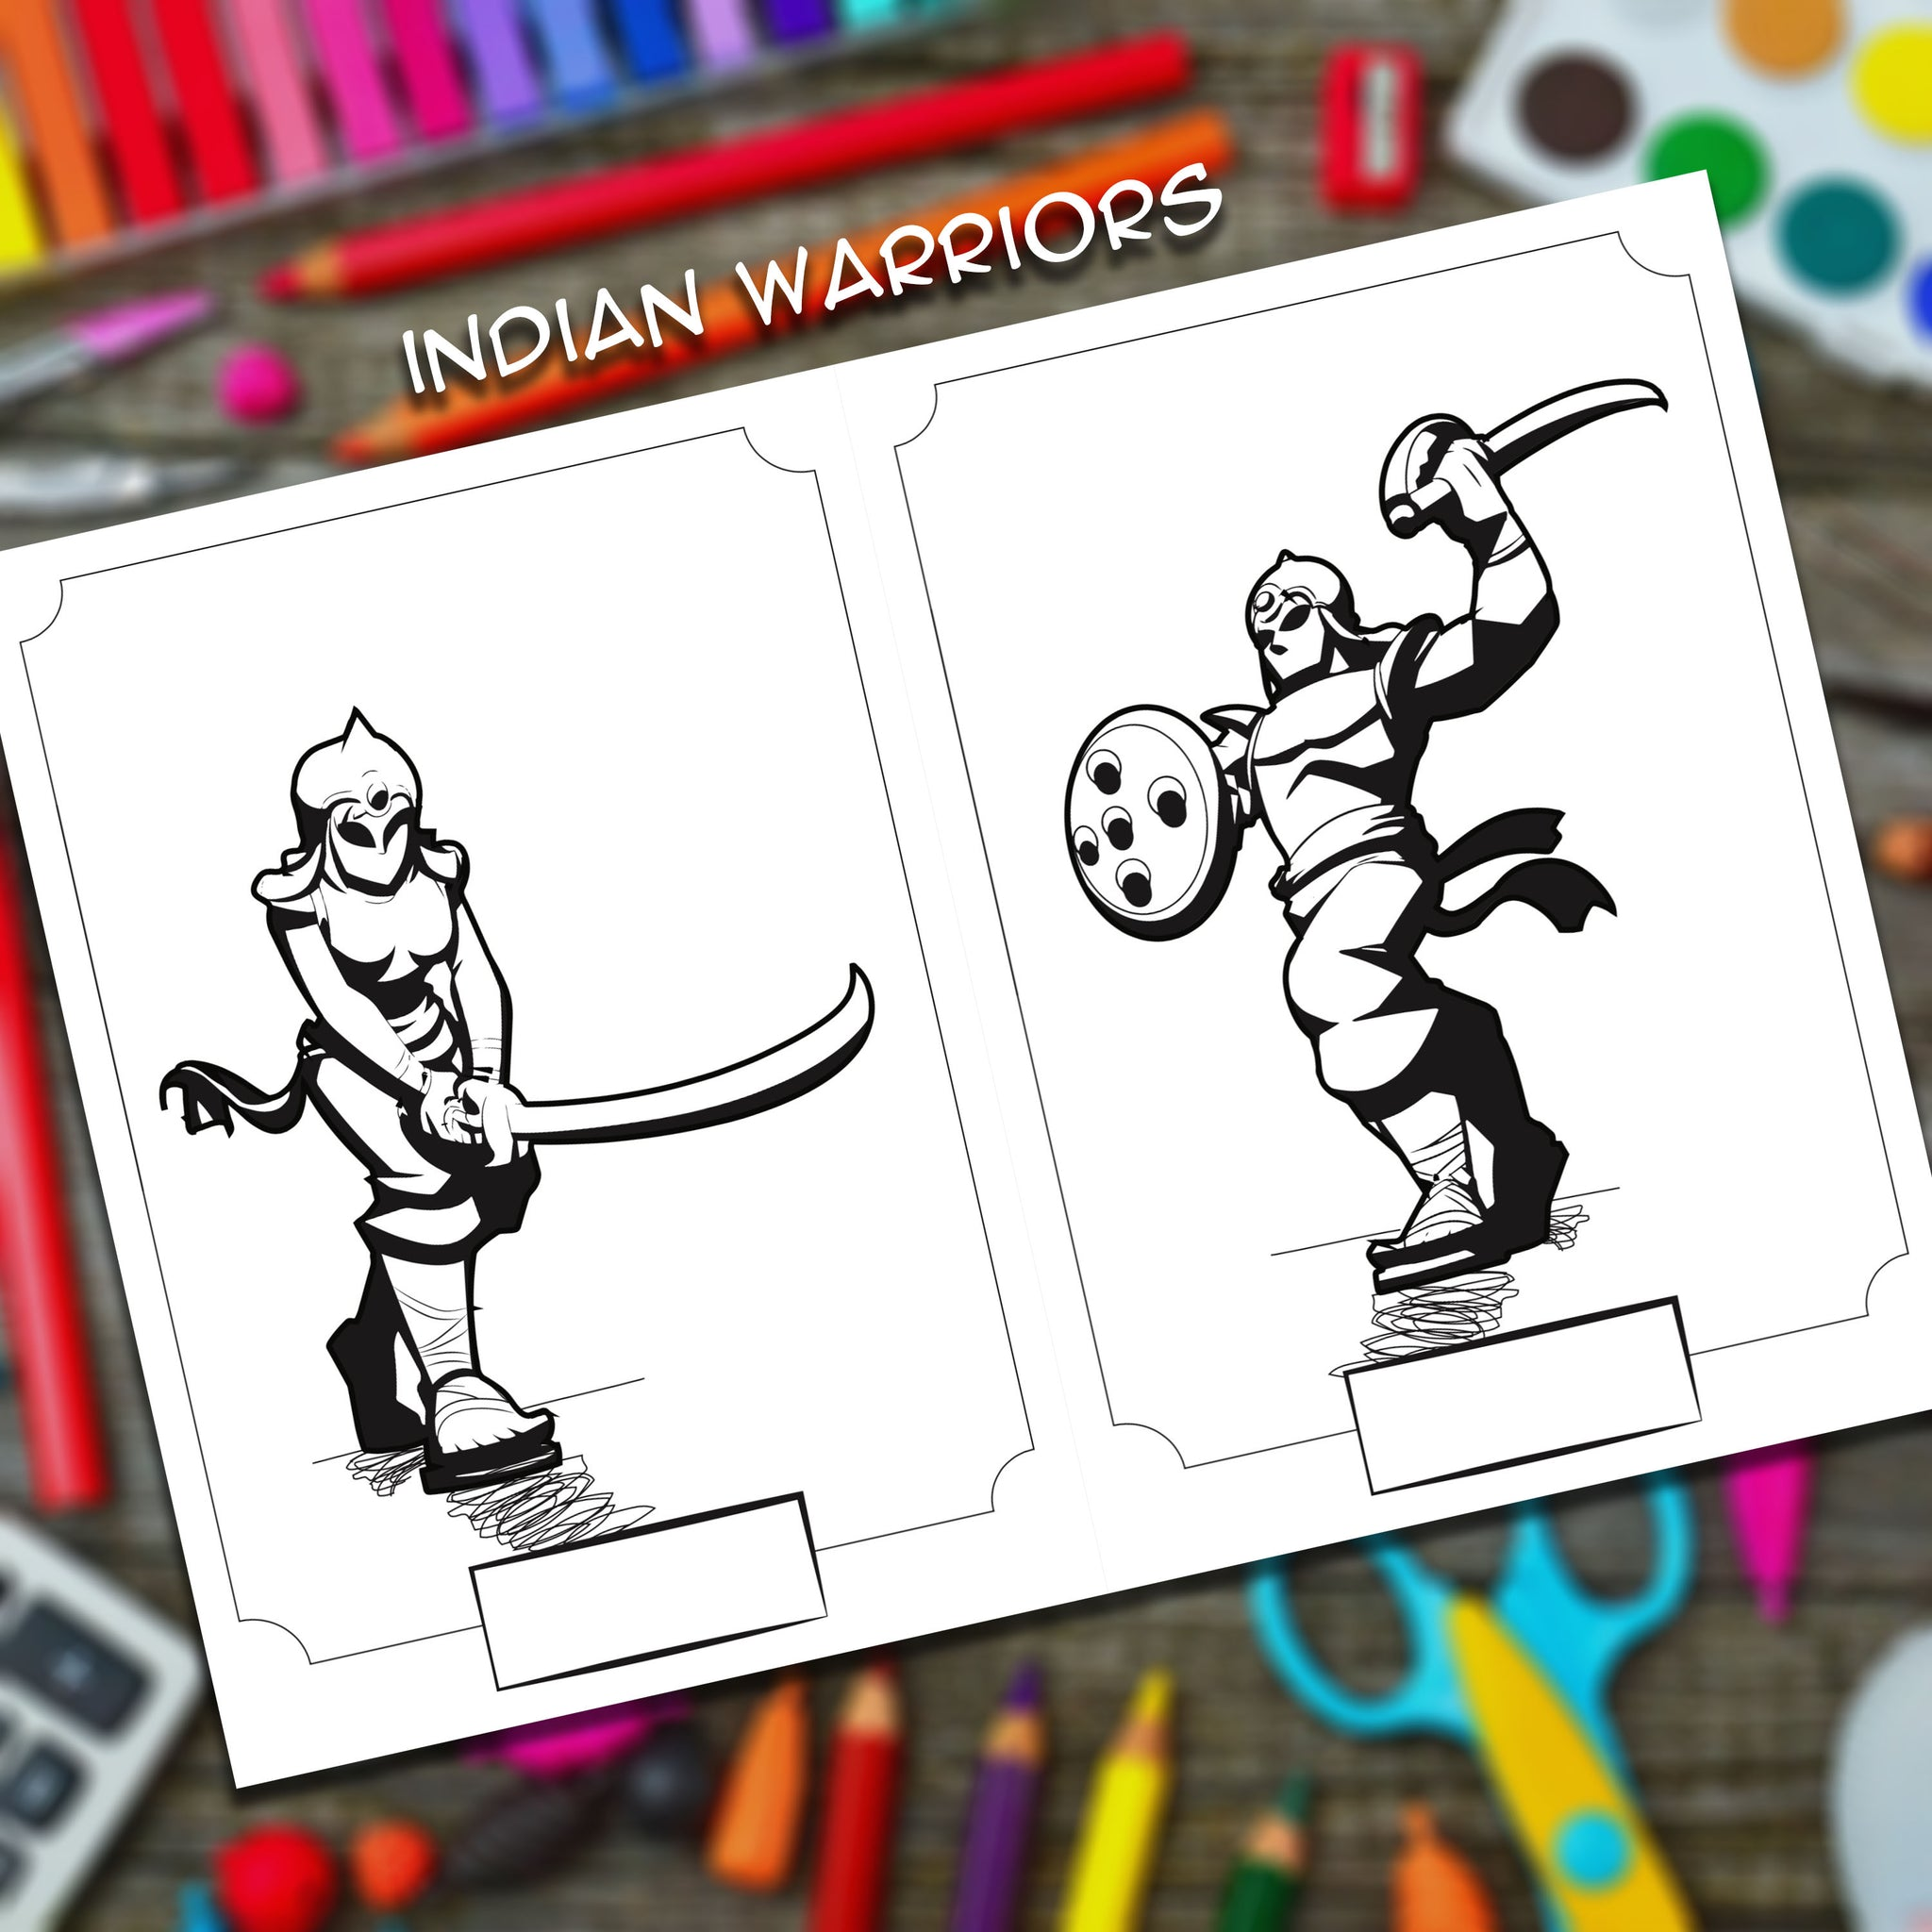 Yudhbhoomi Colouring And Sticker Book With Indian Warriors And Forts